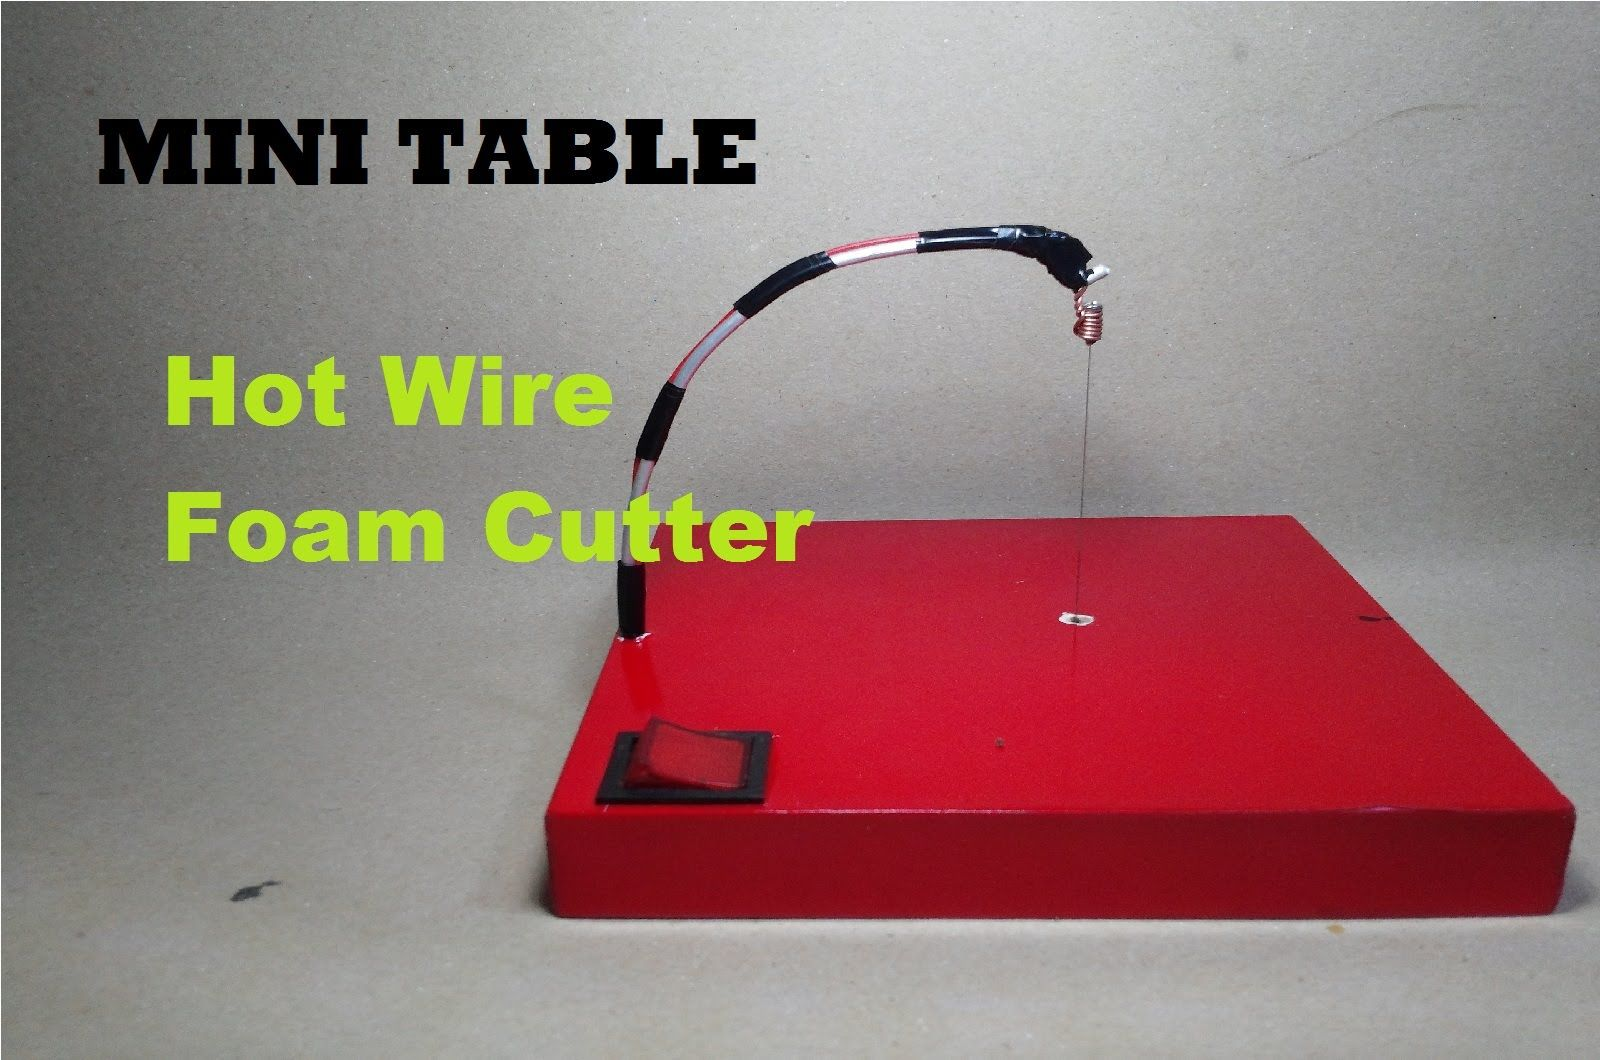 How To Make Powerful Mini Table Hot Wire Foam Cutter | Hack Simple ...